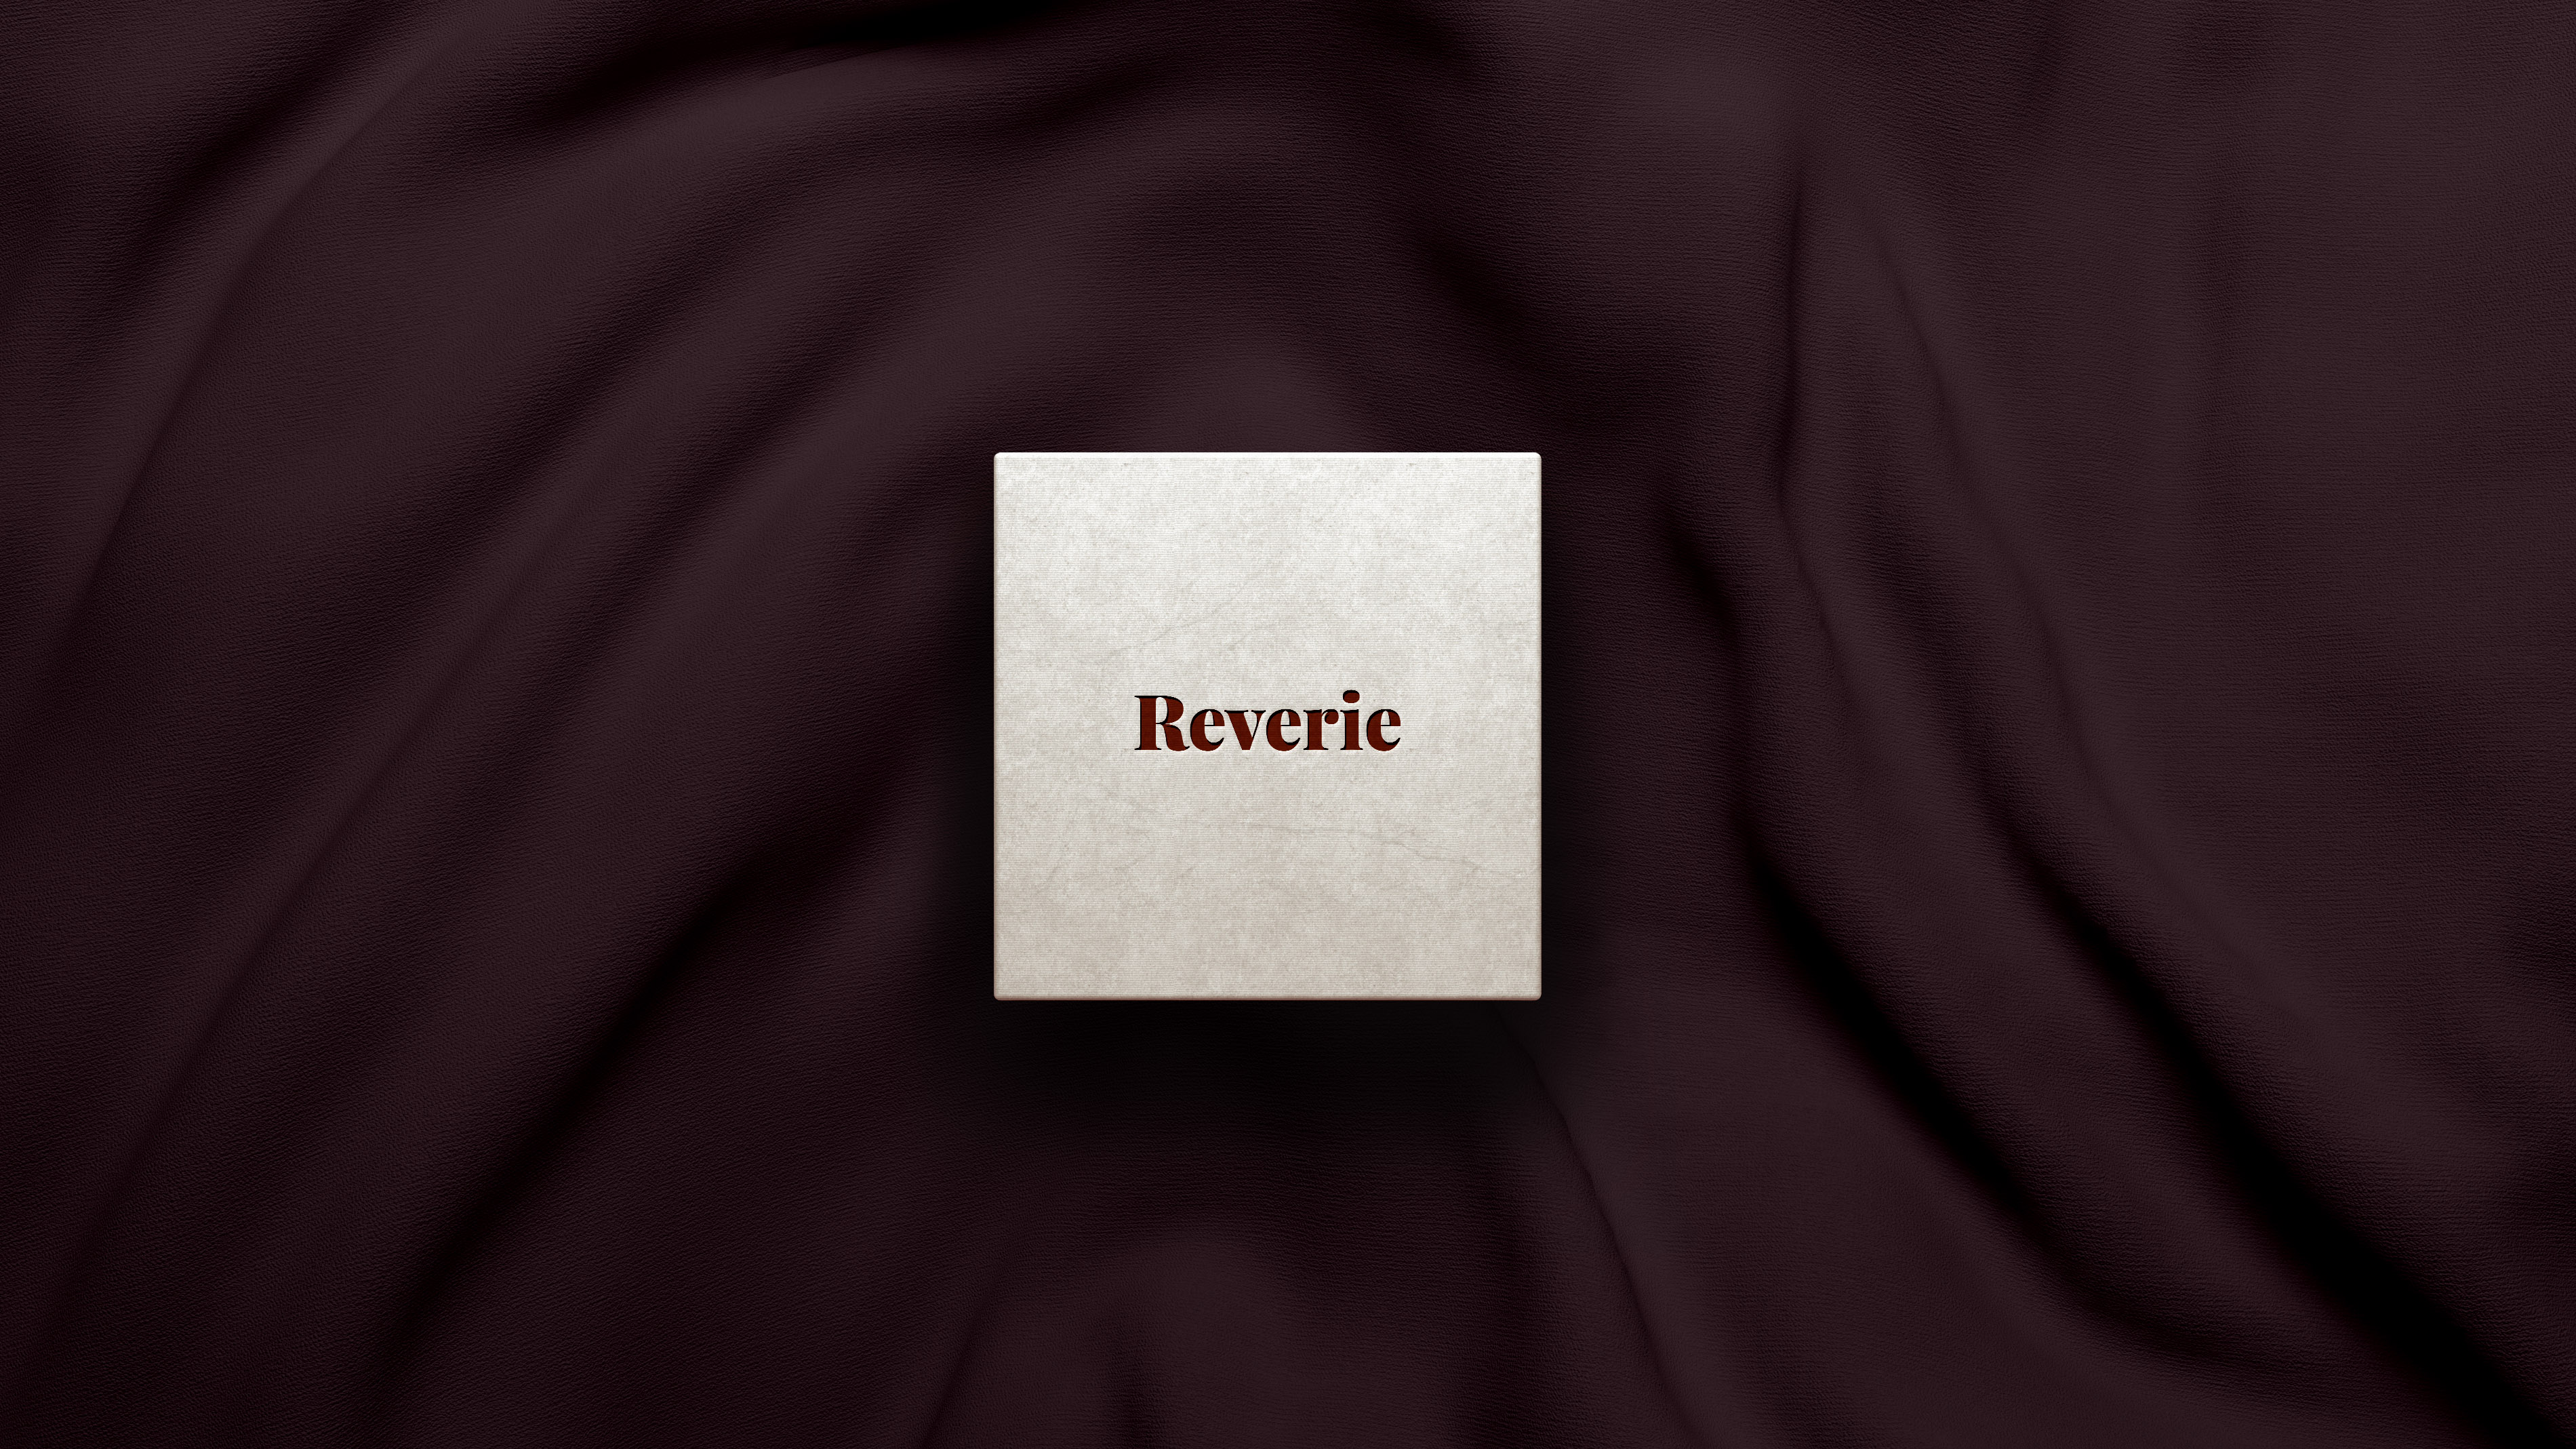 Branding and Packaging for Reverie Handcrafted Jewelry, Design by Mahmoud Ismail